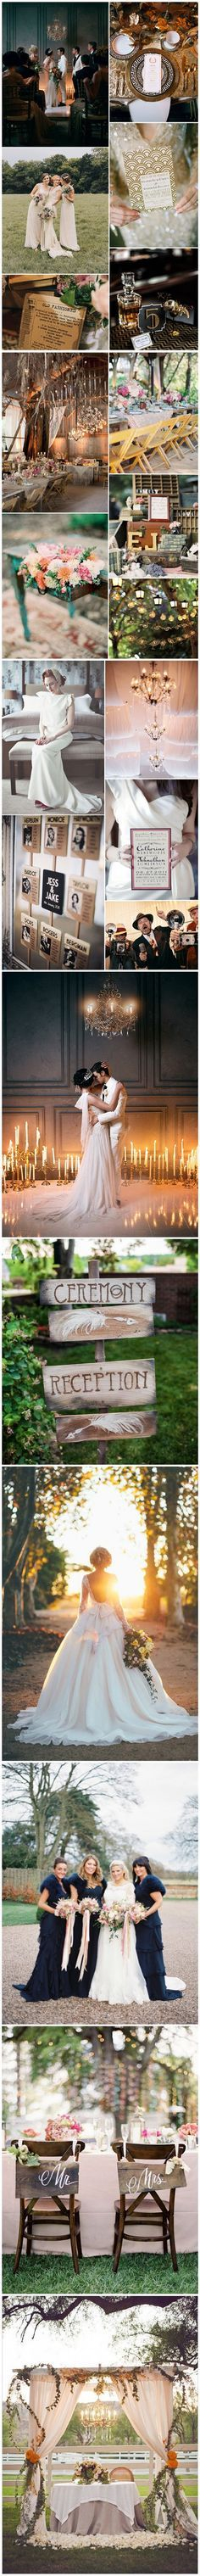 Wedding Trends 2015 - 1920's and 30's vintage wedding ideas